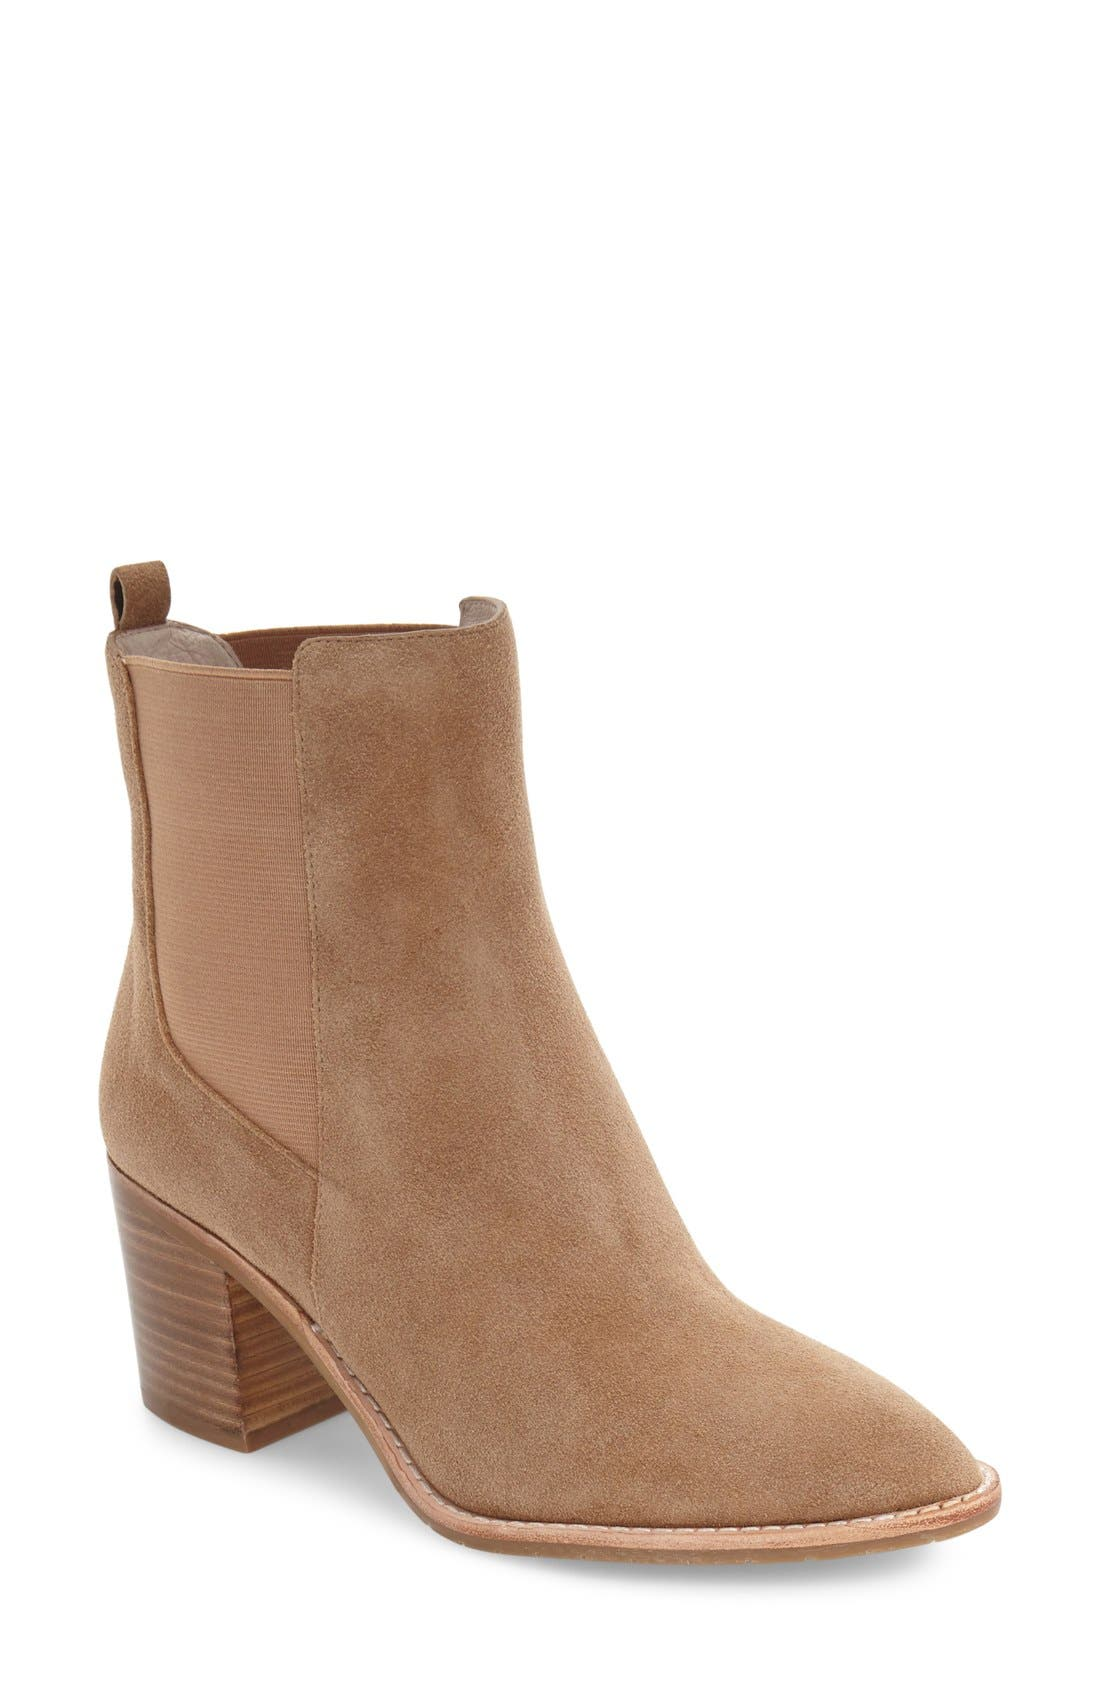 Main Image - Kenneth Cole New York Quinley Water Resistant Chelsea Boot (Women)